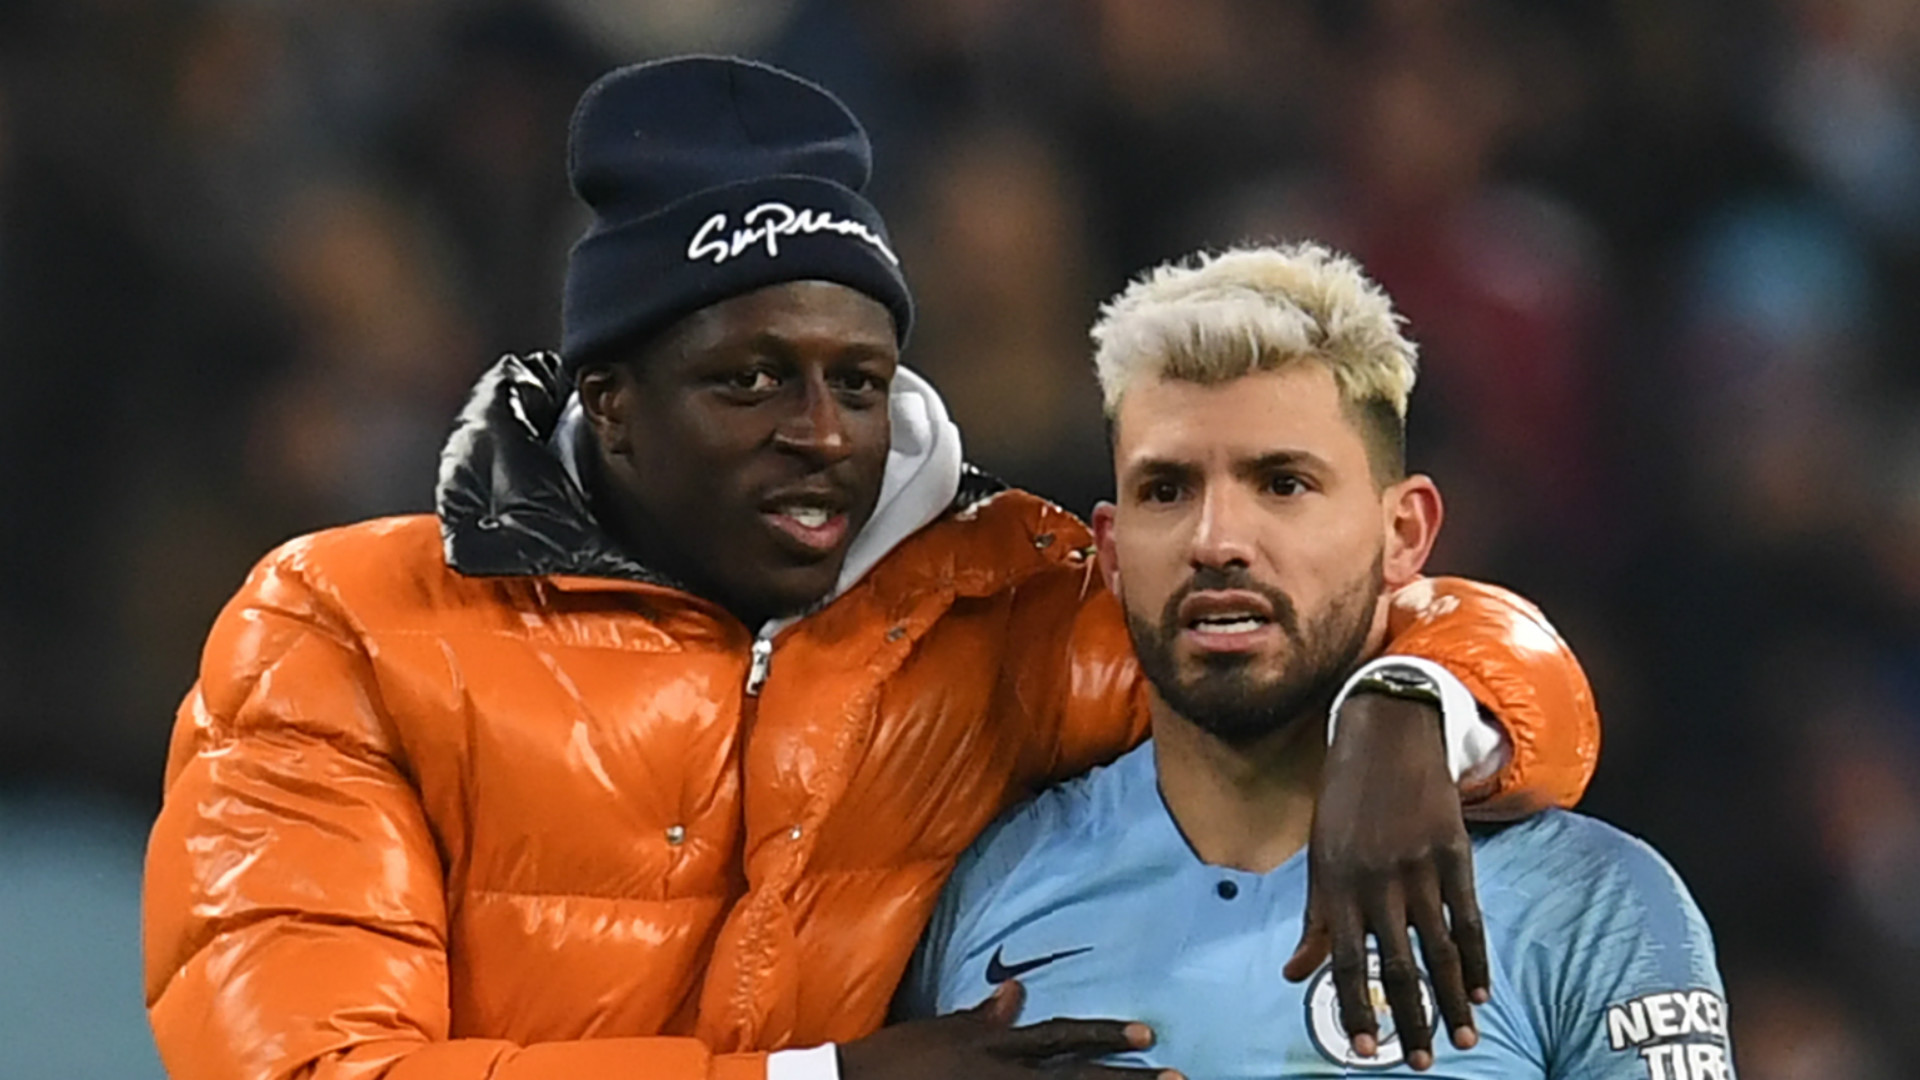 Man City boss Guardiola blows fuse over Mendy Hong Kong claims: F***!